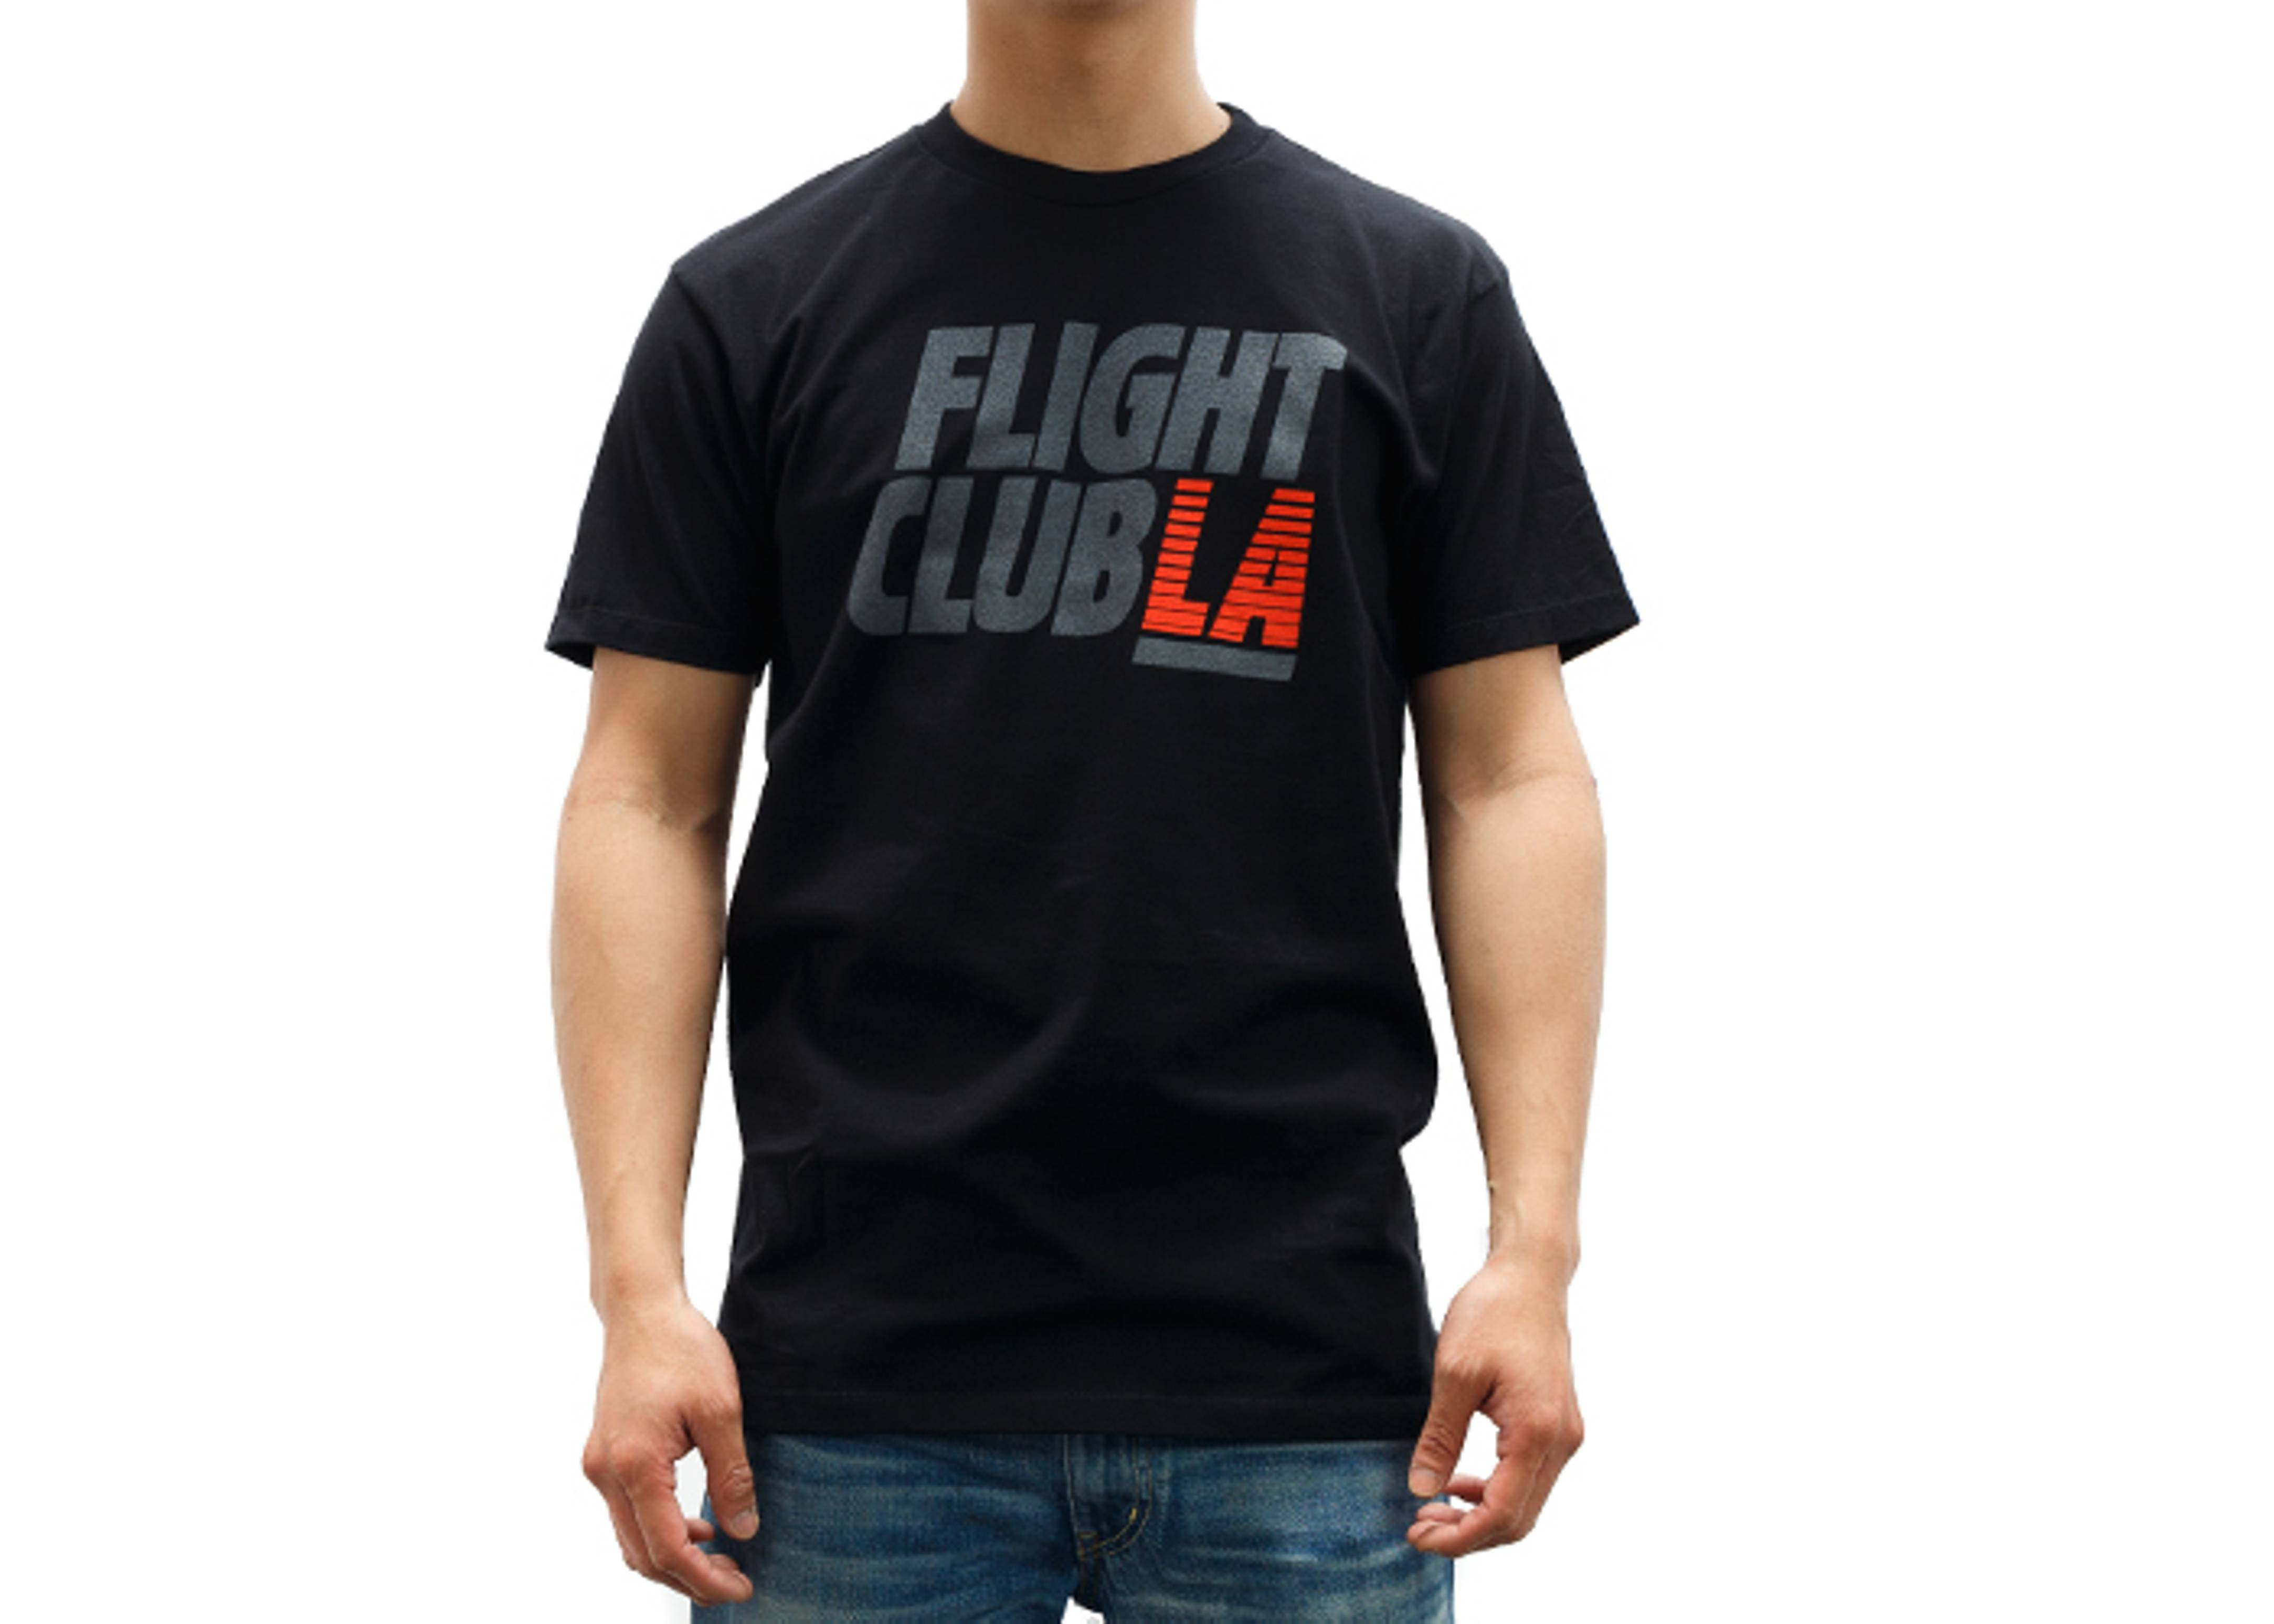 la stacked t-shirt